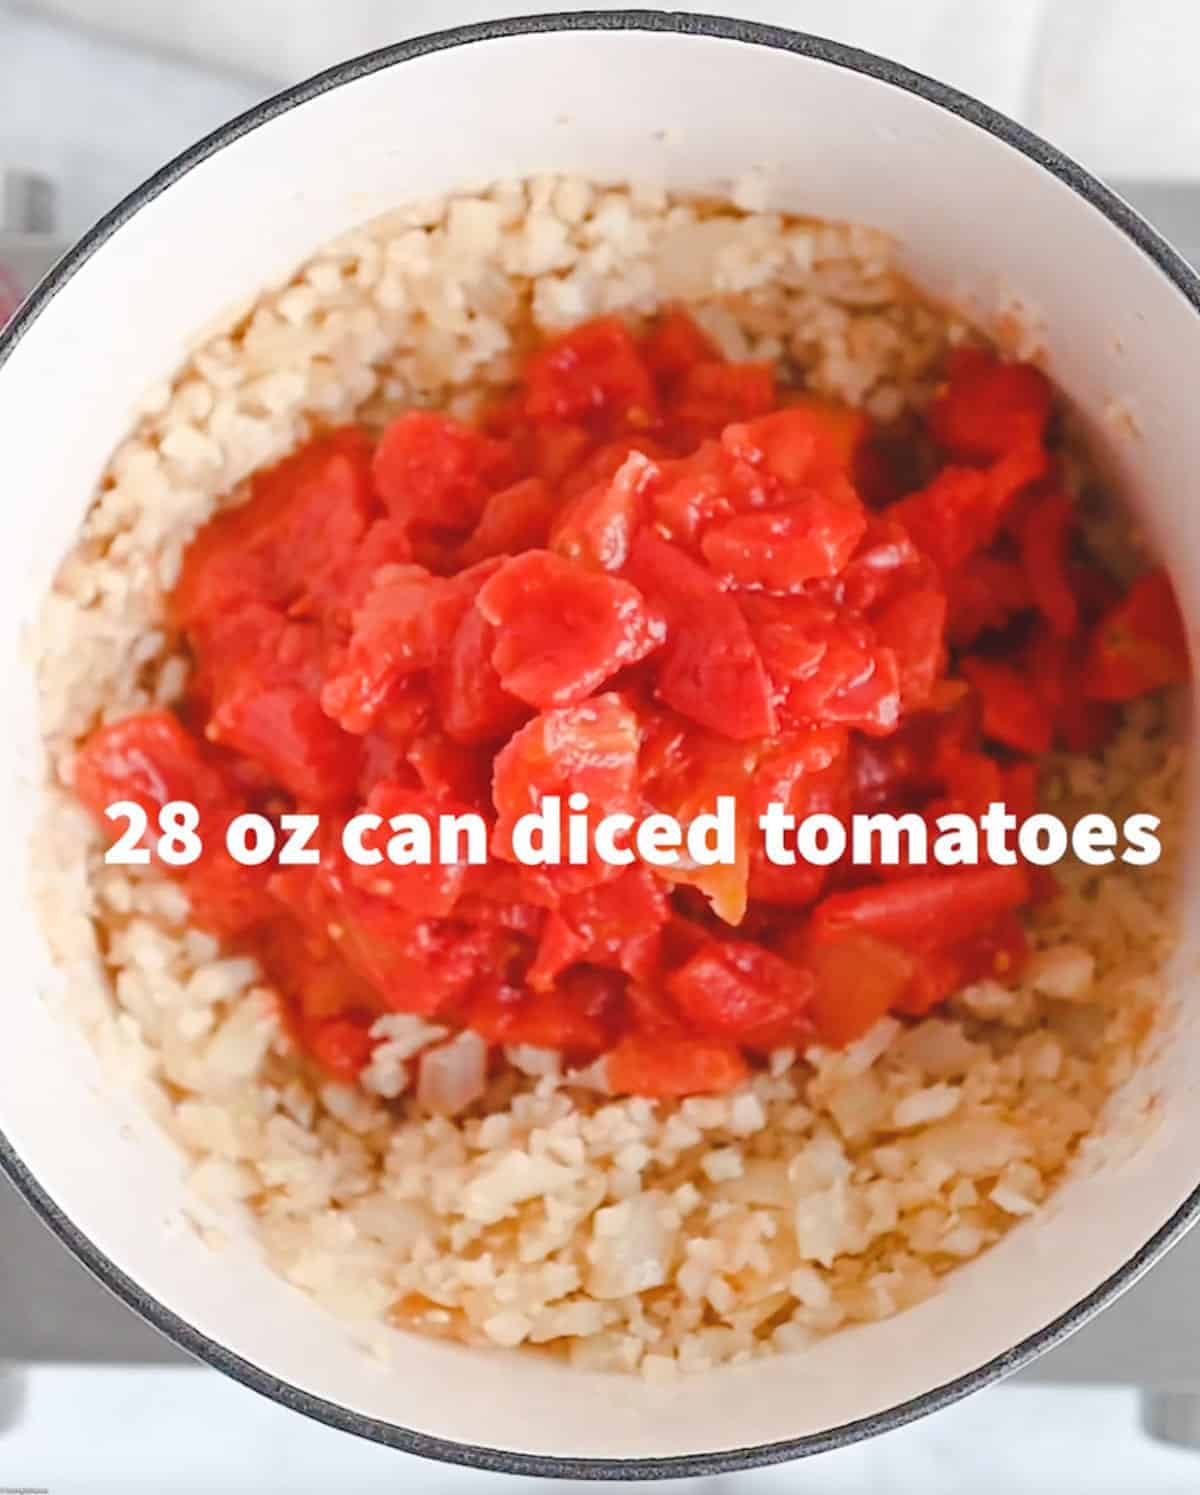 Canned diced tomatoes are used to make this recipe.